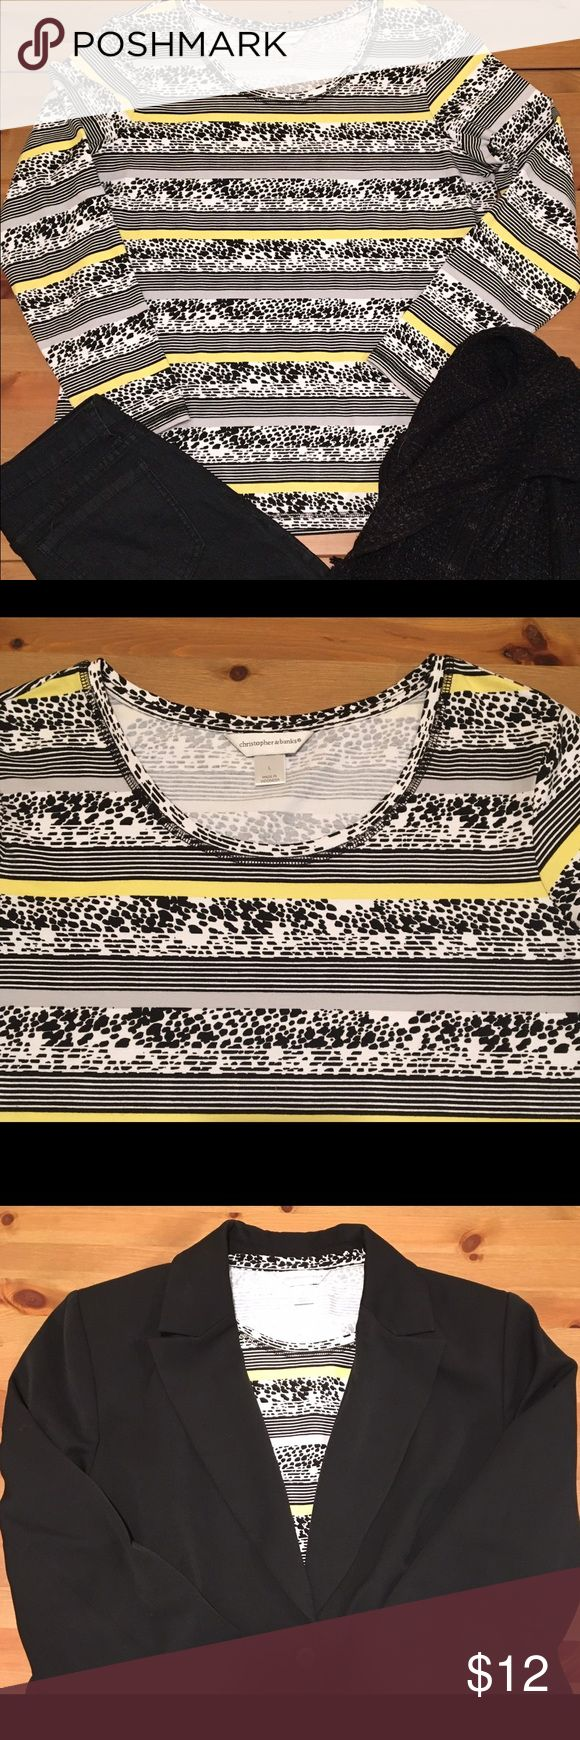 """Christopher and Banks knit top size large Striking long-sleeved knit top in black, white, and yellow. Perfect for under a black suit jacket for a pop of color. Soft cotton fabric with just enough spandex for a perfect fit! 26"""" long 24"""" sleeve 21"""" across underarms. Like new condition. Christopher & Banks Tops"""